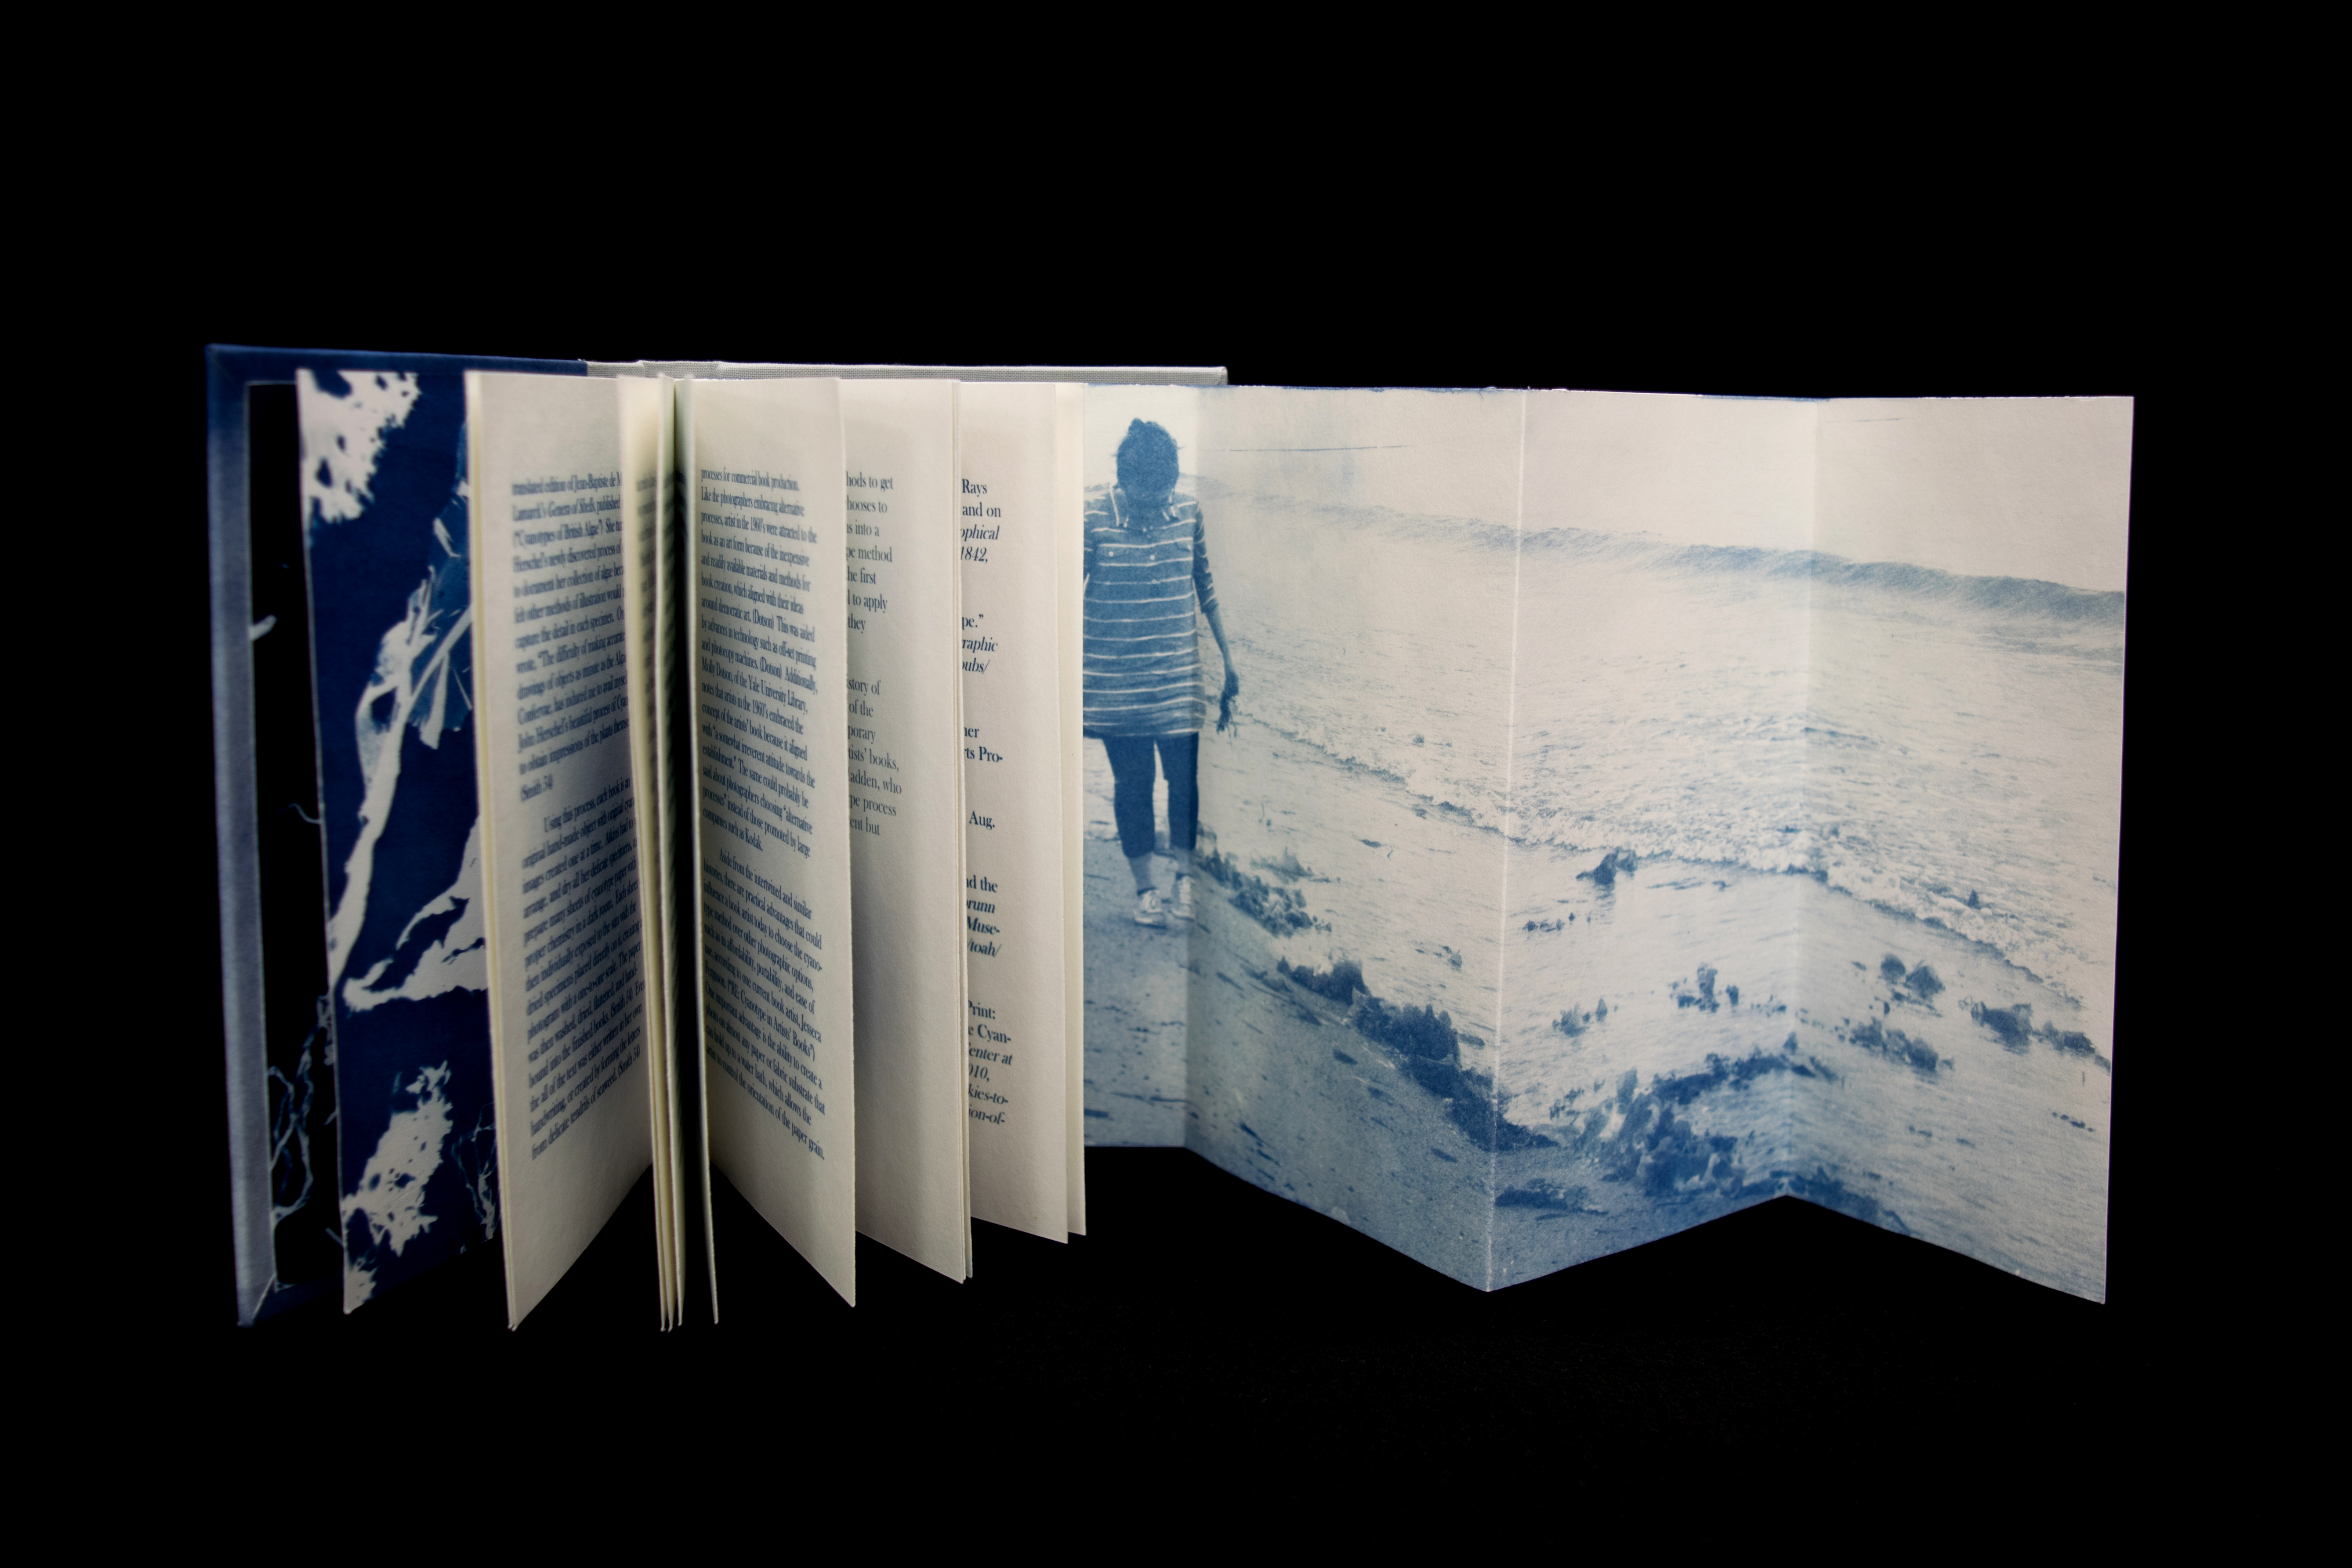 Image of The Blue Book, showing pull out with image of the artist collecting seaweed on a beach